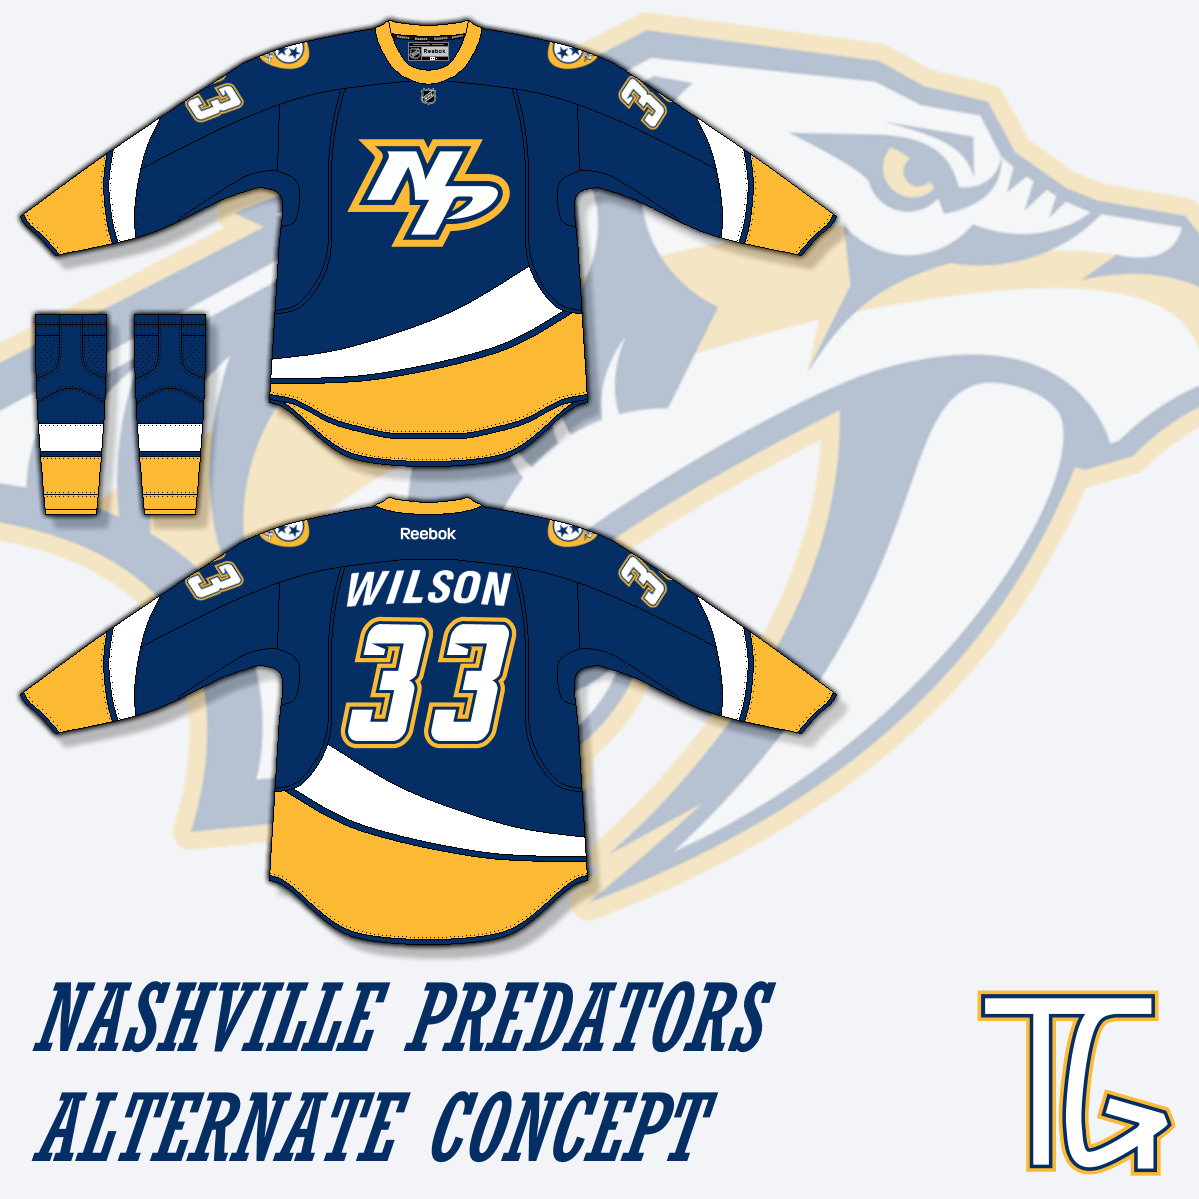 e8b8412bed7 Milwaukee Admirals Logo Preds Preds Logo  Tuesday  Look Who The Cat Dragged  In!